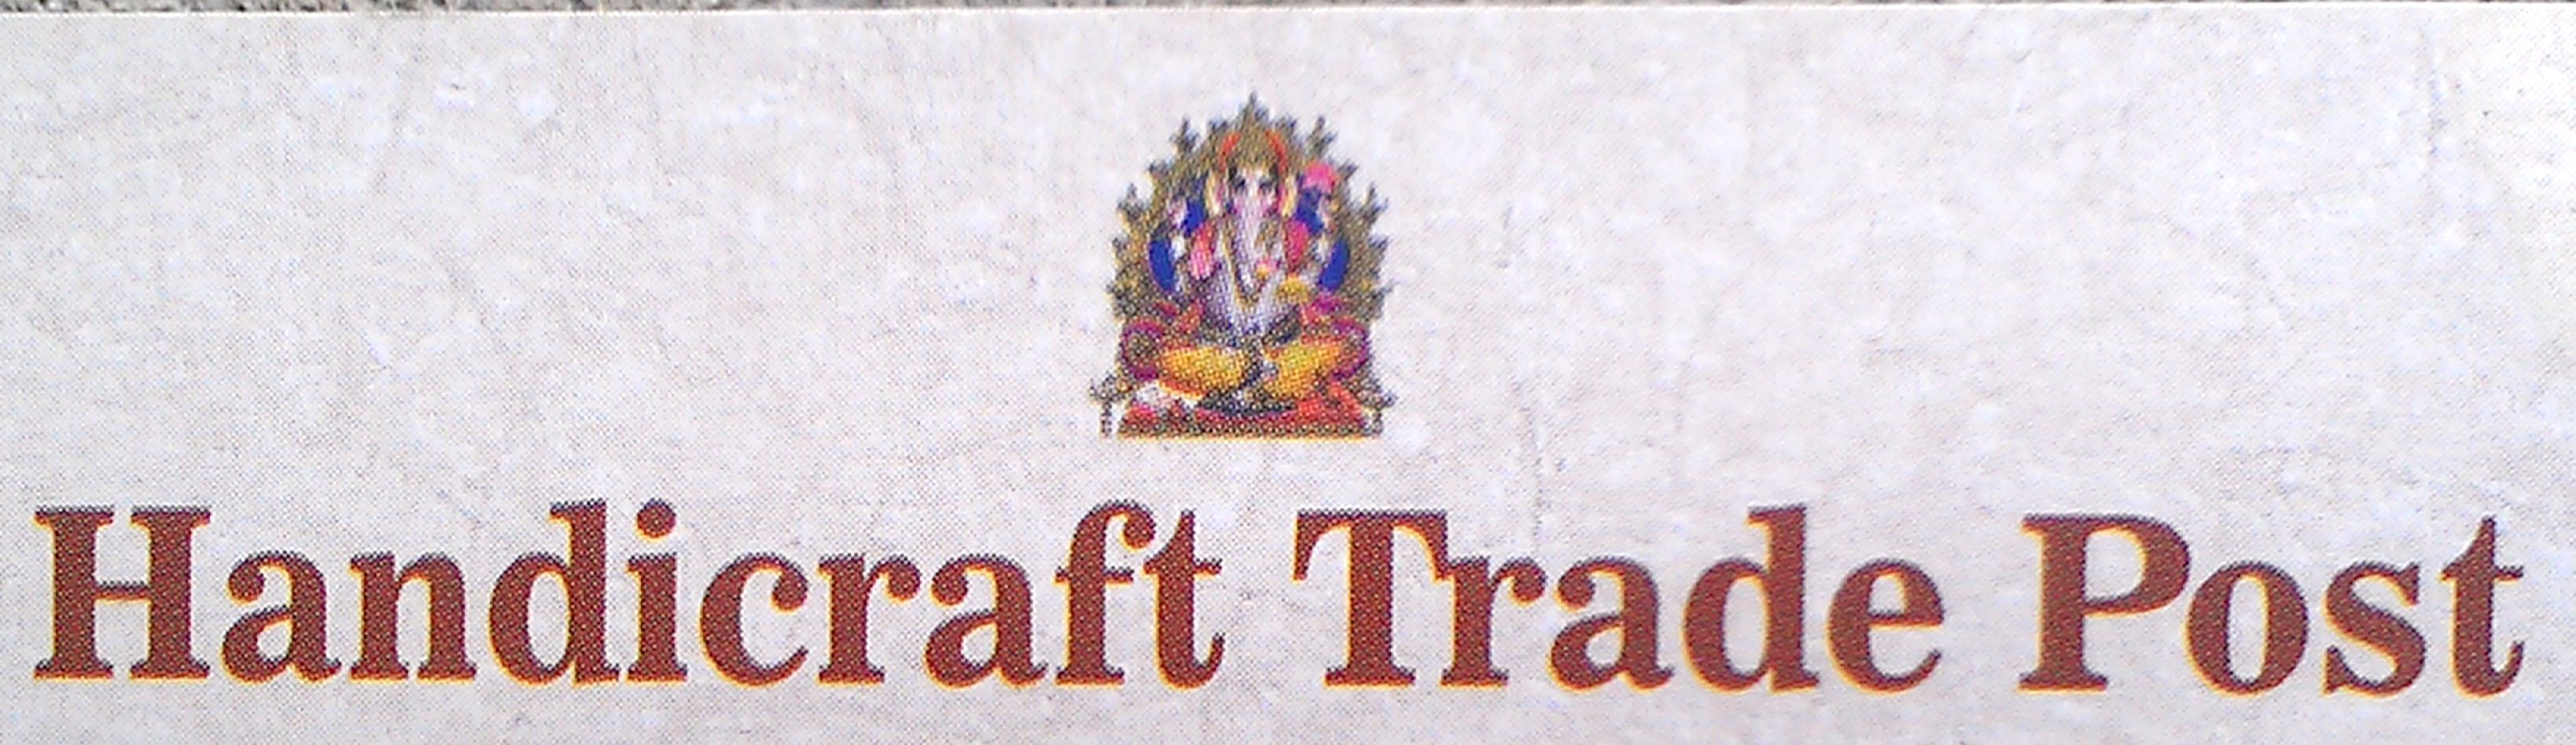 Handicraft Trade Post